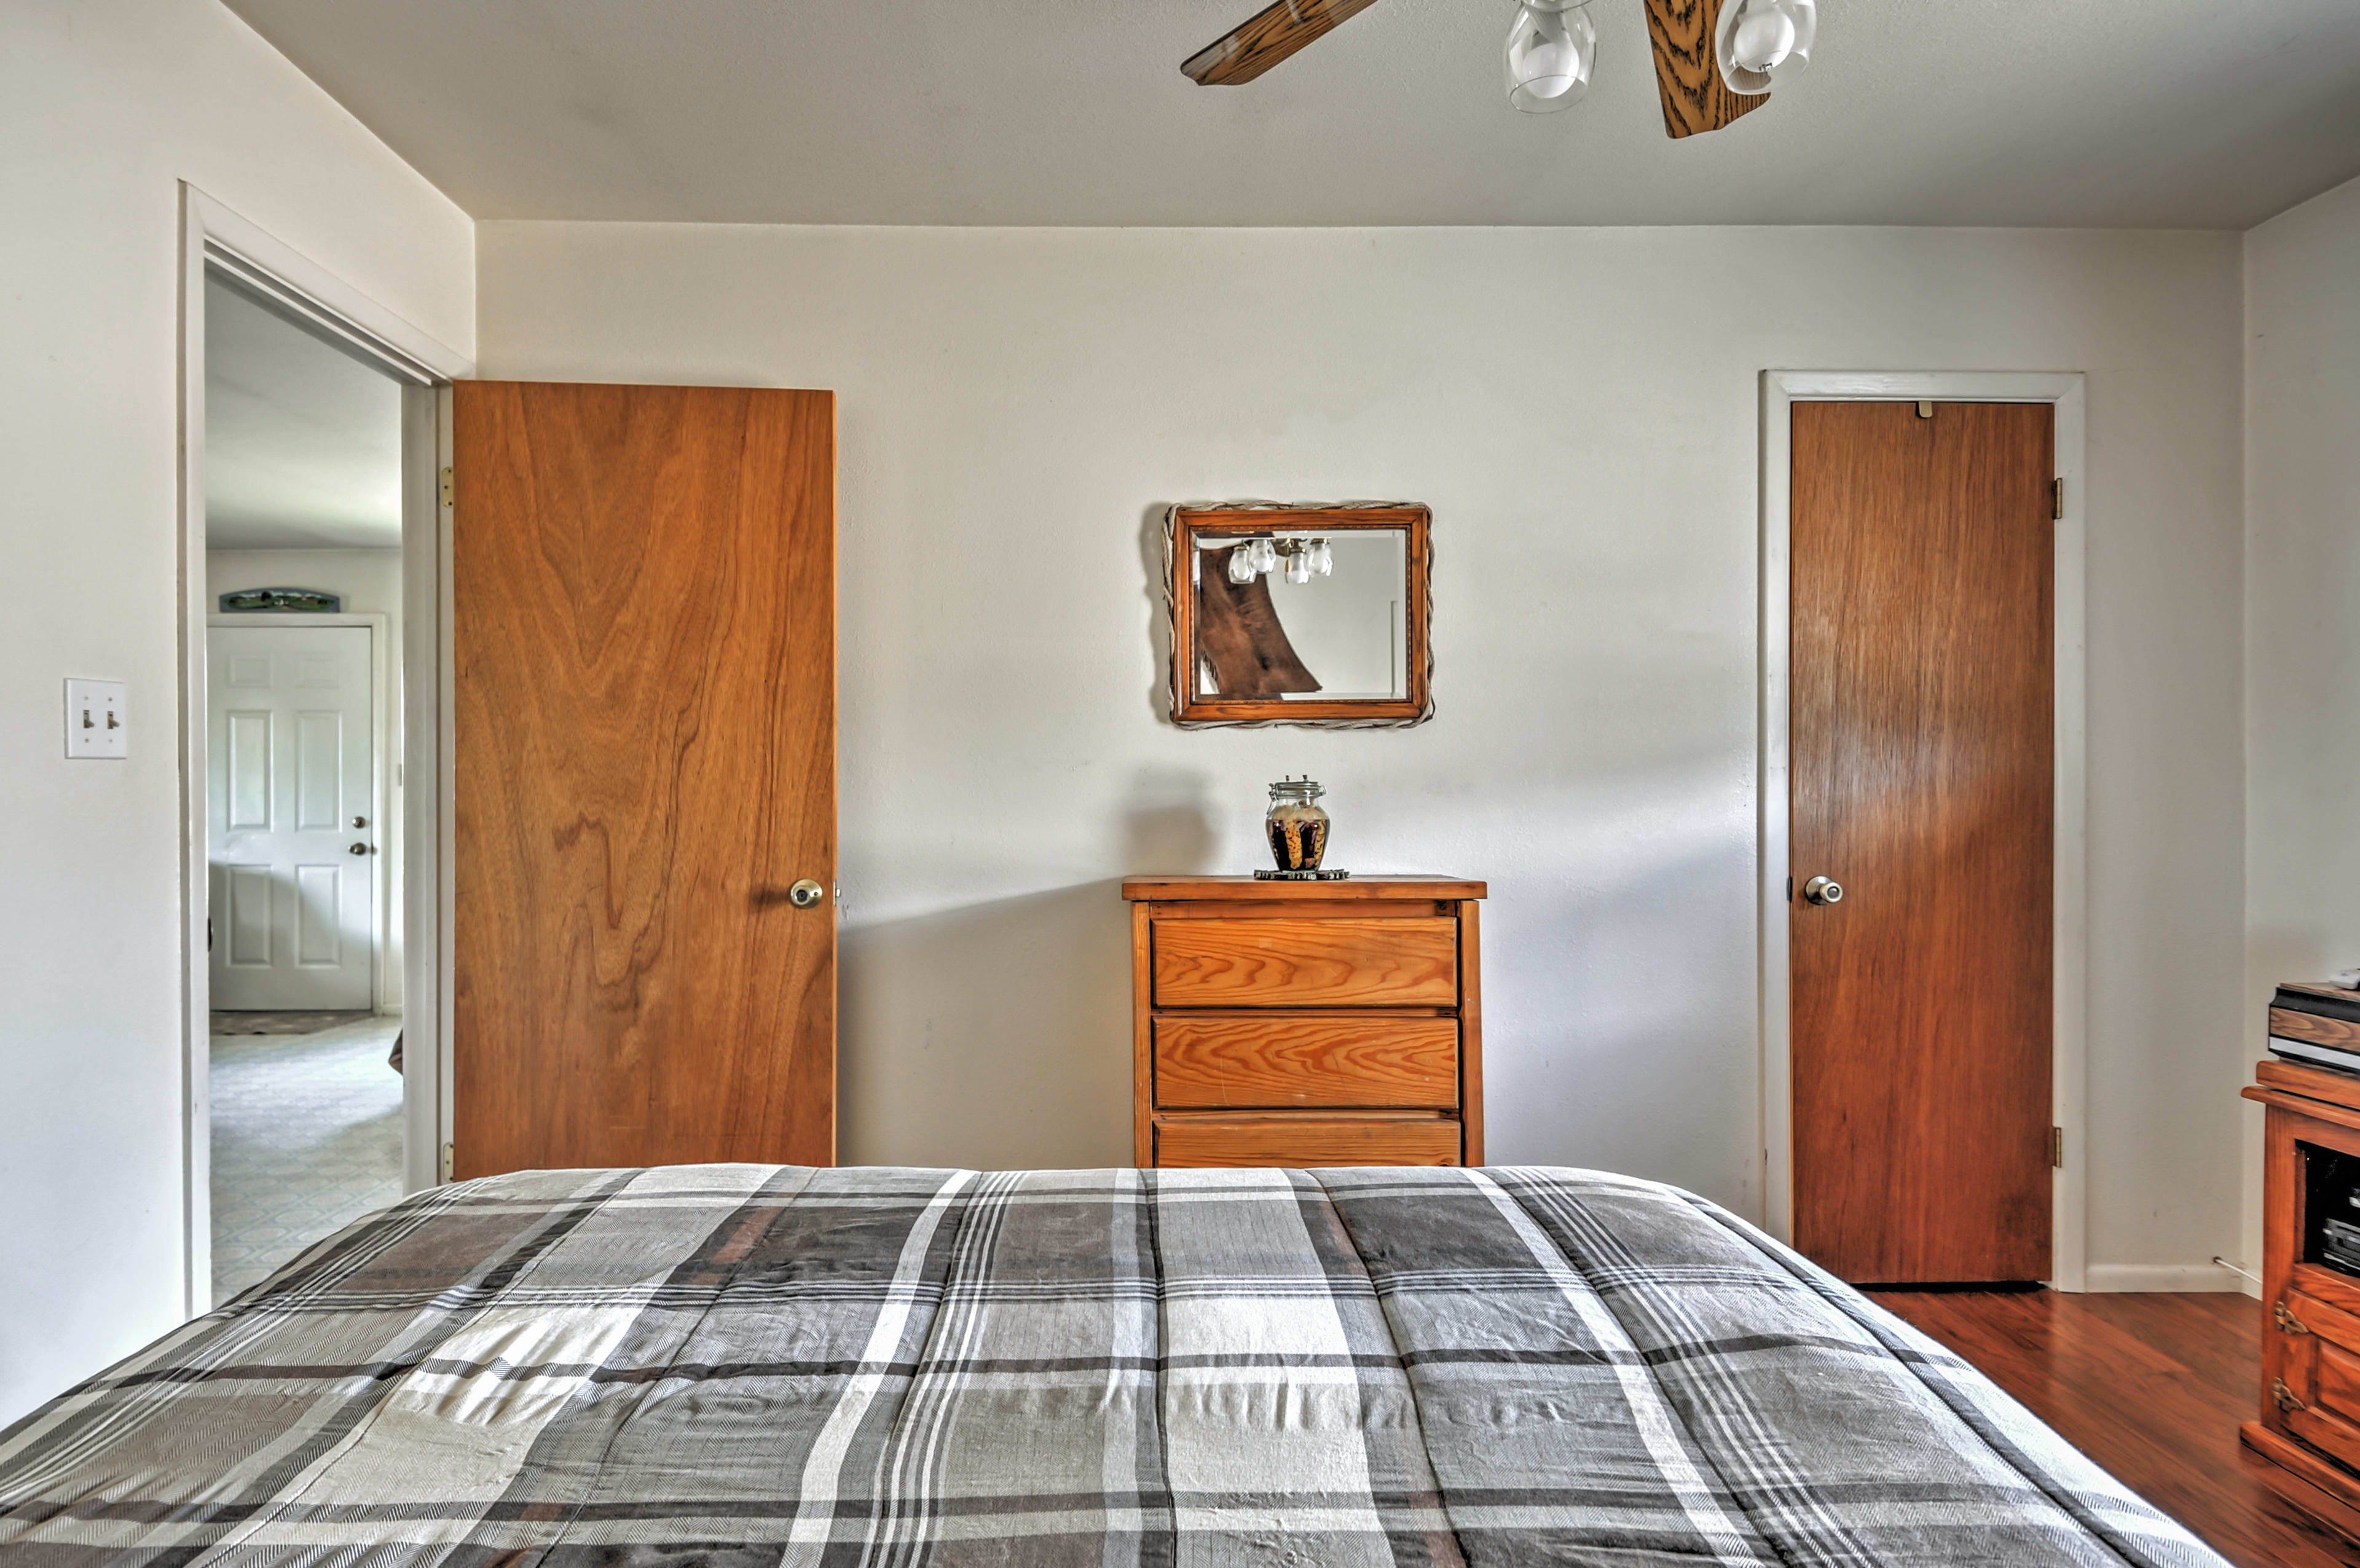 Your welcoming bedroom awaits for a peaceful night's sleep!